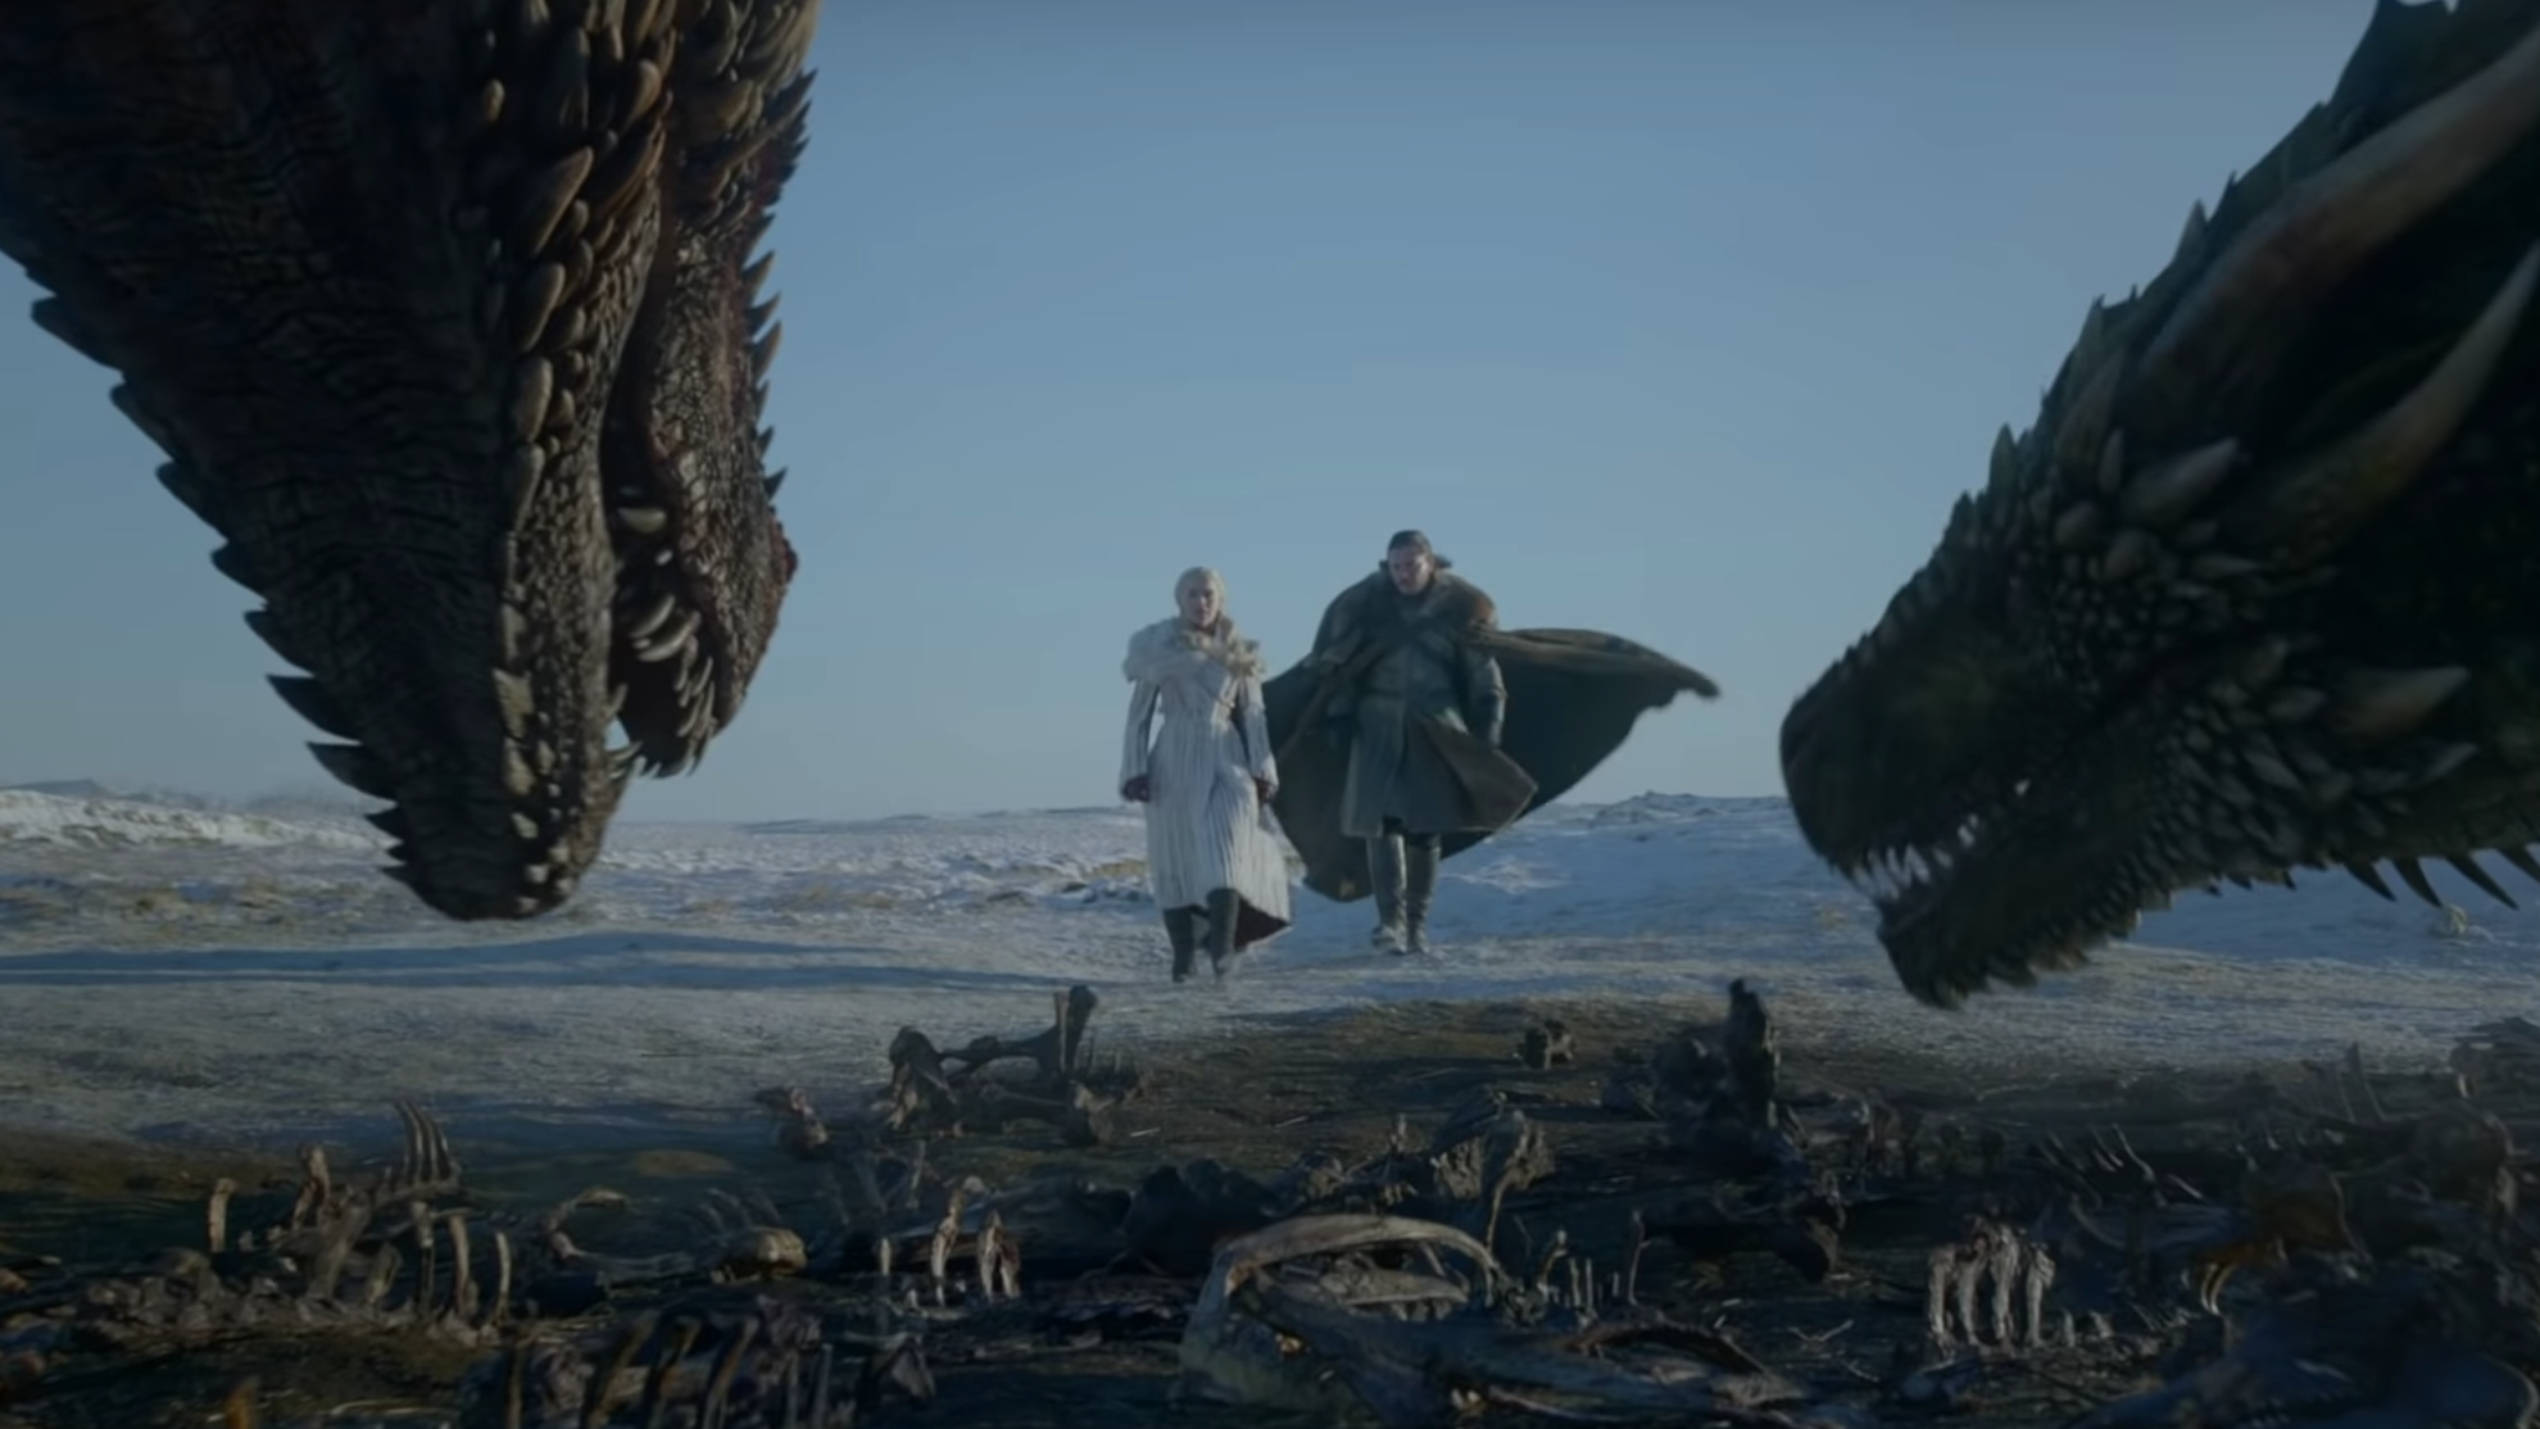 Game of Thrones theme tune: everything you need to know